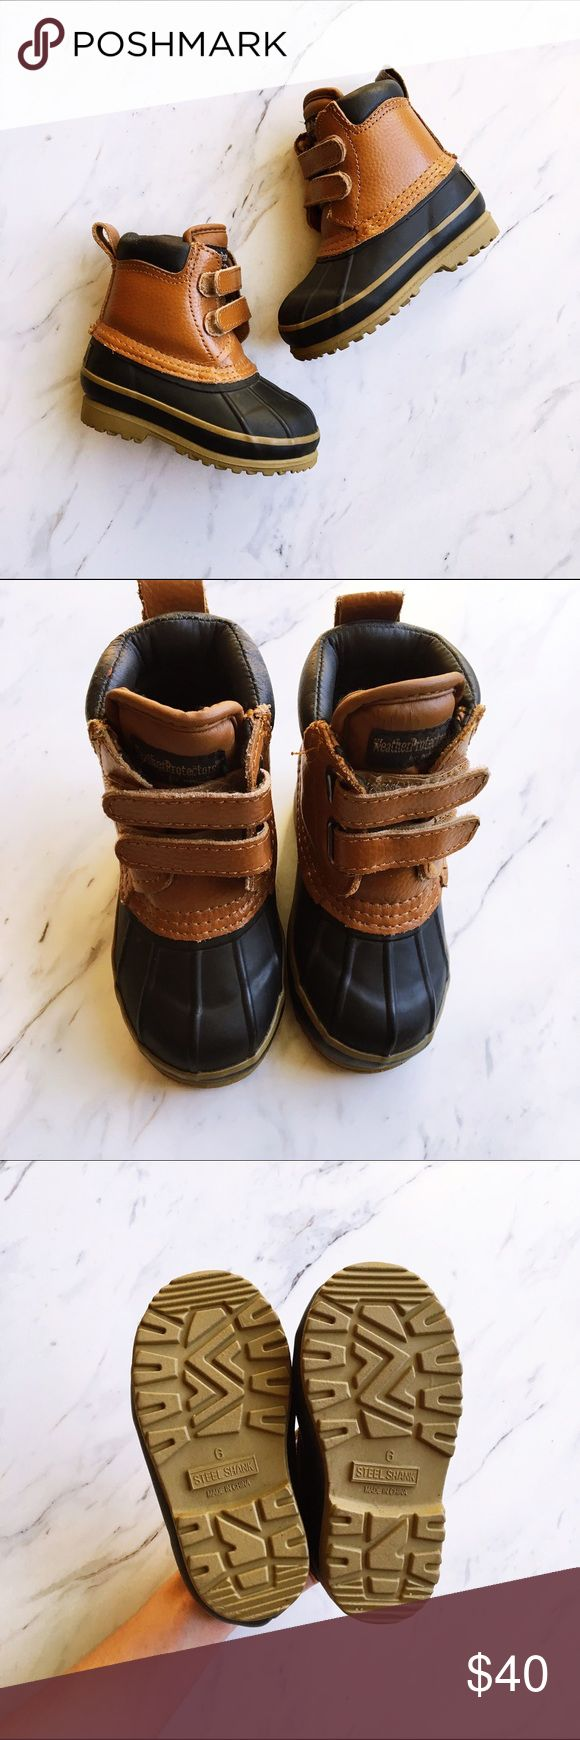 Kids Velcro Duck Boots Weather Protector duck boots by Totes for your toddler. Practically perfect condition! Cutest little boots for fall and winter, sure to keep your kiddos toes warm and dry. Easy to put on and take off with Velcro straps and extremely well made. You and your baby could match this season with your duck boots in the snow and rain. Brown, tan and navy blue. Totes Shoes Rain & Snow Boots